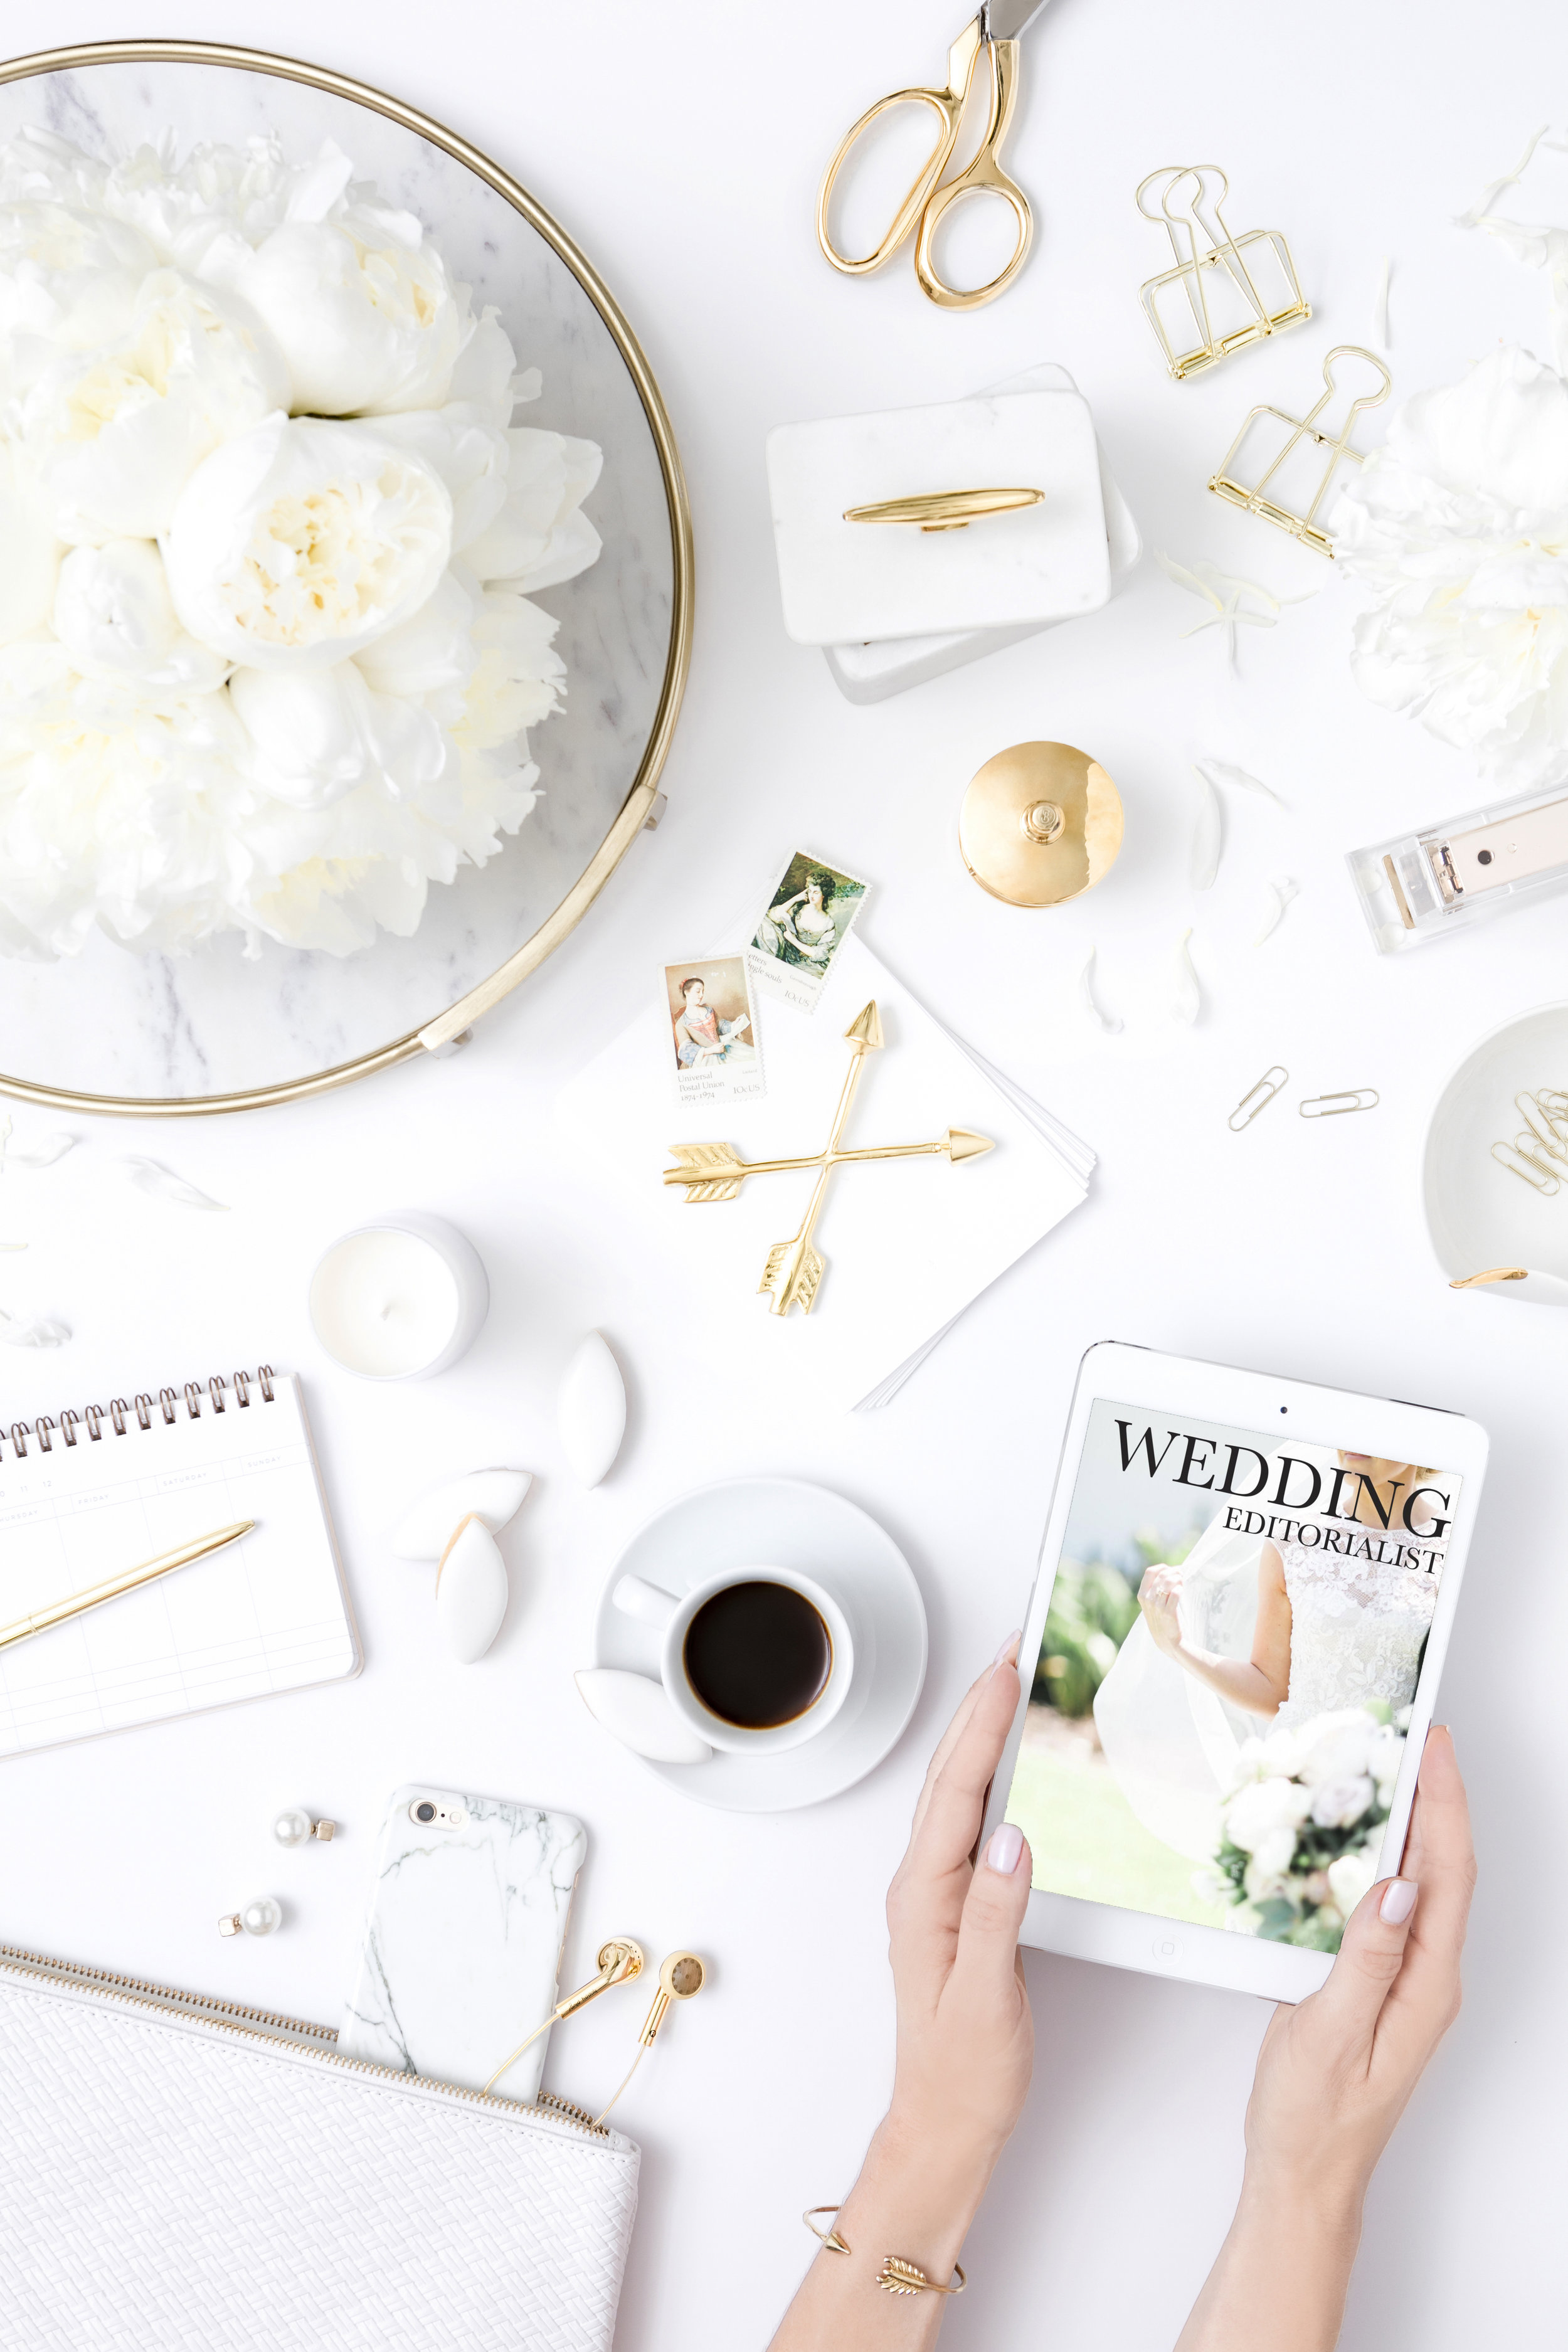 PERSONAL ISSUE:  The Wedding Editorialist is proud to have published Ashley & Will's stunning wedding at The Bacara Santa Barbara. This beautiful couple wanted to share their love of Santa Barbara and the California Coastline. The bride, a wedding designer herself, and her groom worked with an all star cast of wedding planners, florists, and caterers to provide their guests with a beautiful weekend away. Originally, their issue was created as a welcome gift to incoming guests. The magazine was so beloved and such a hit that the couple added their wedding photos to it, allowing them to tell their love story from beginning to end. To read more,  CLICK HERE.